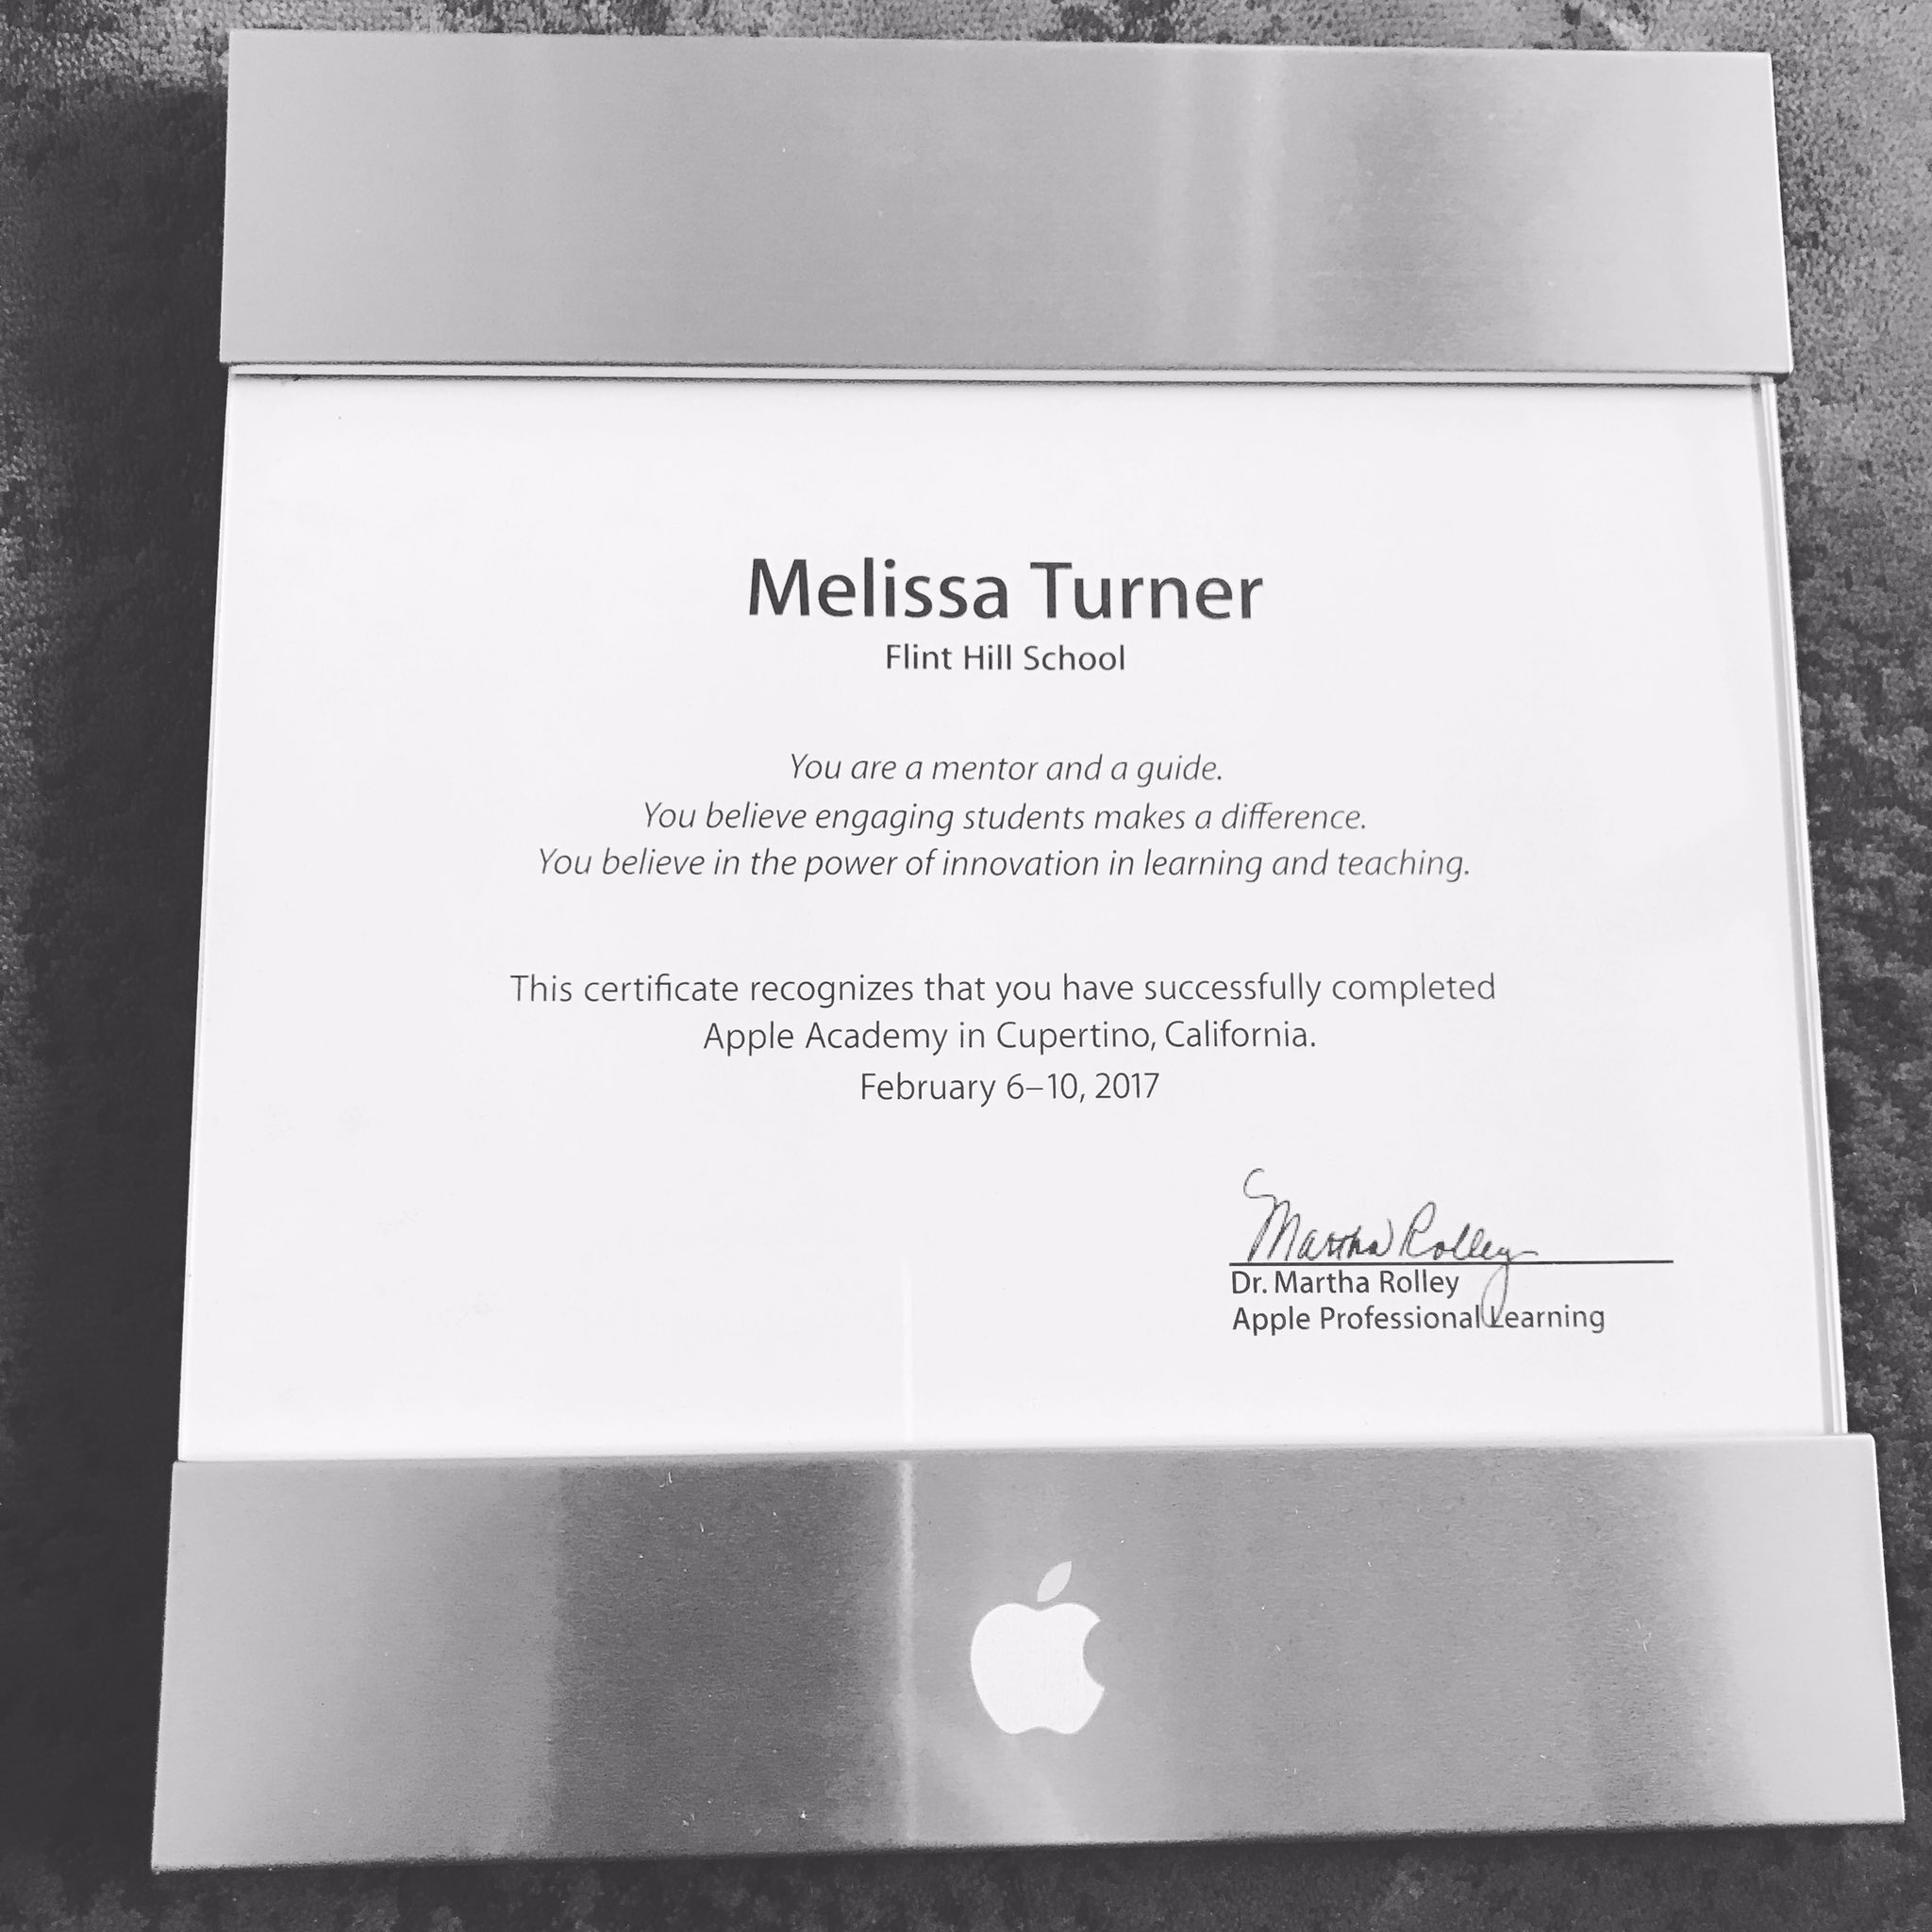 Officially an Apple Learning Specialist! Thanks #appleacademy #myflinthill https://t.co/g9YBPxgW77